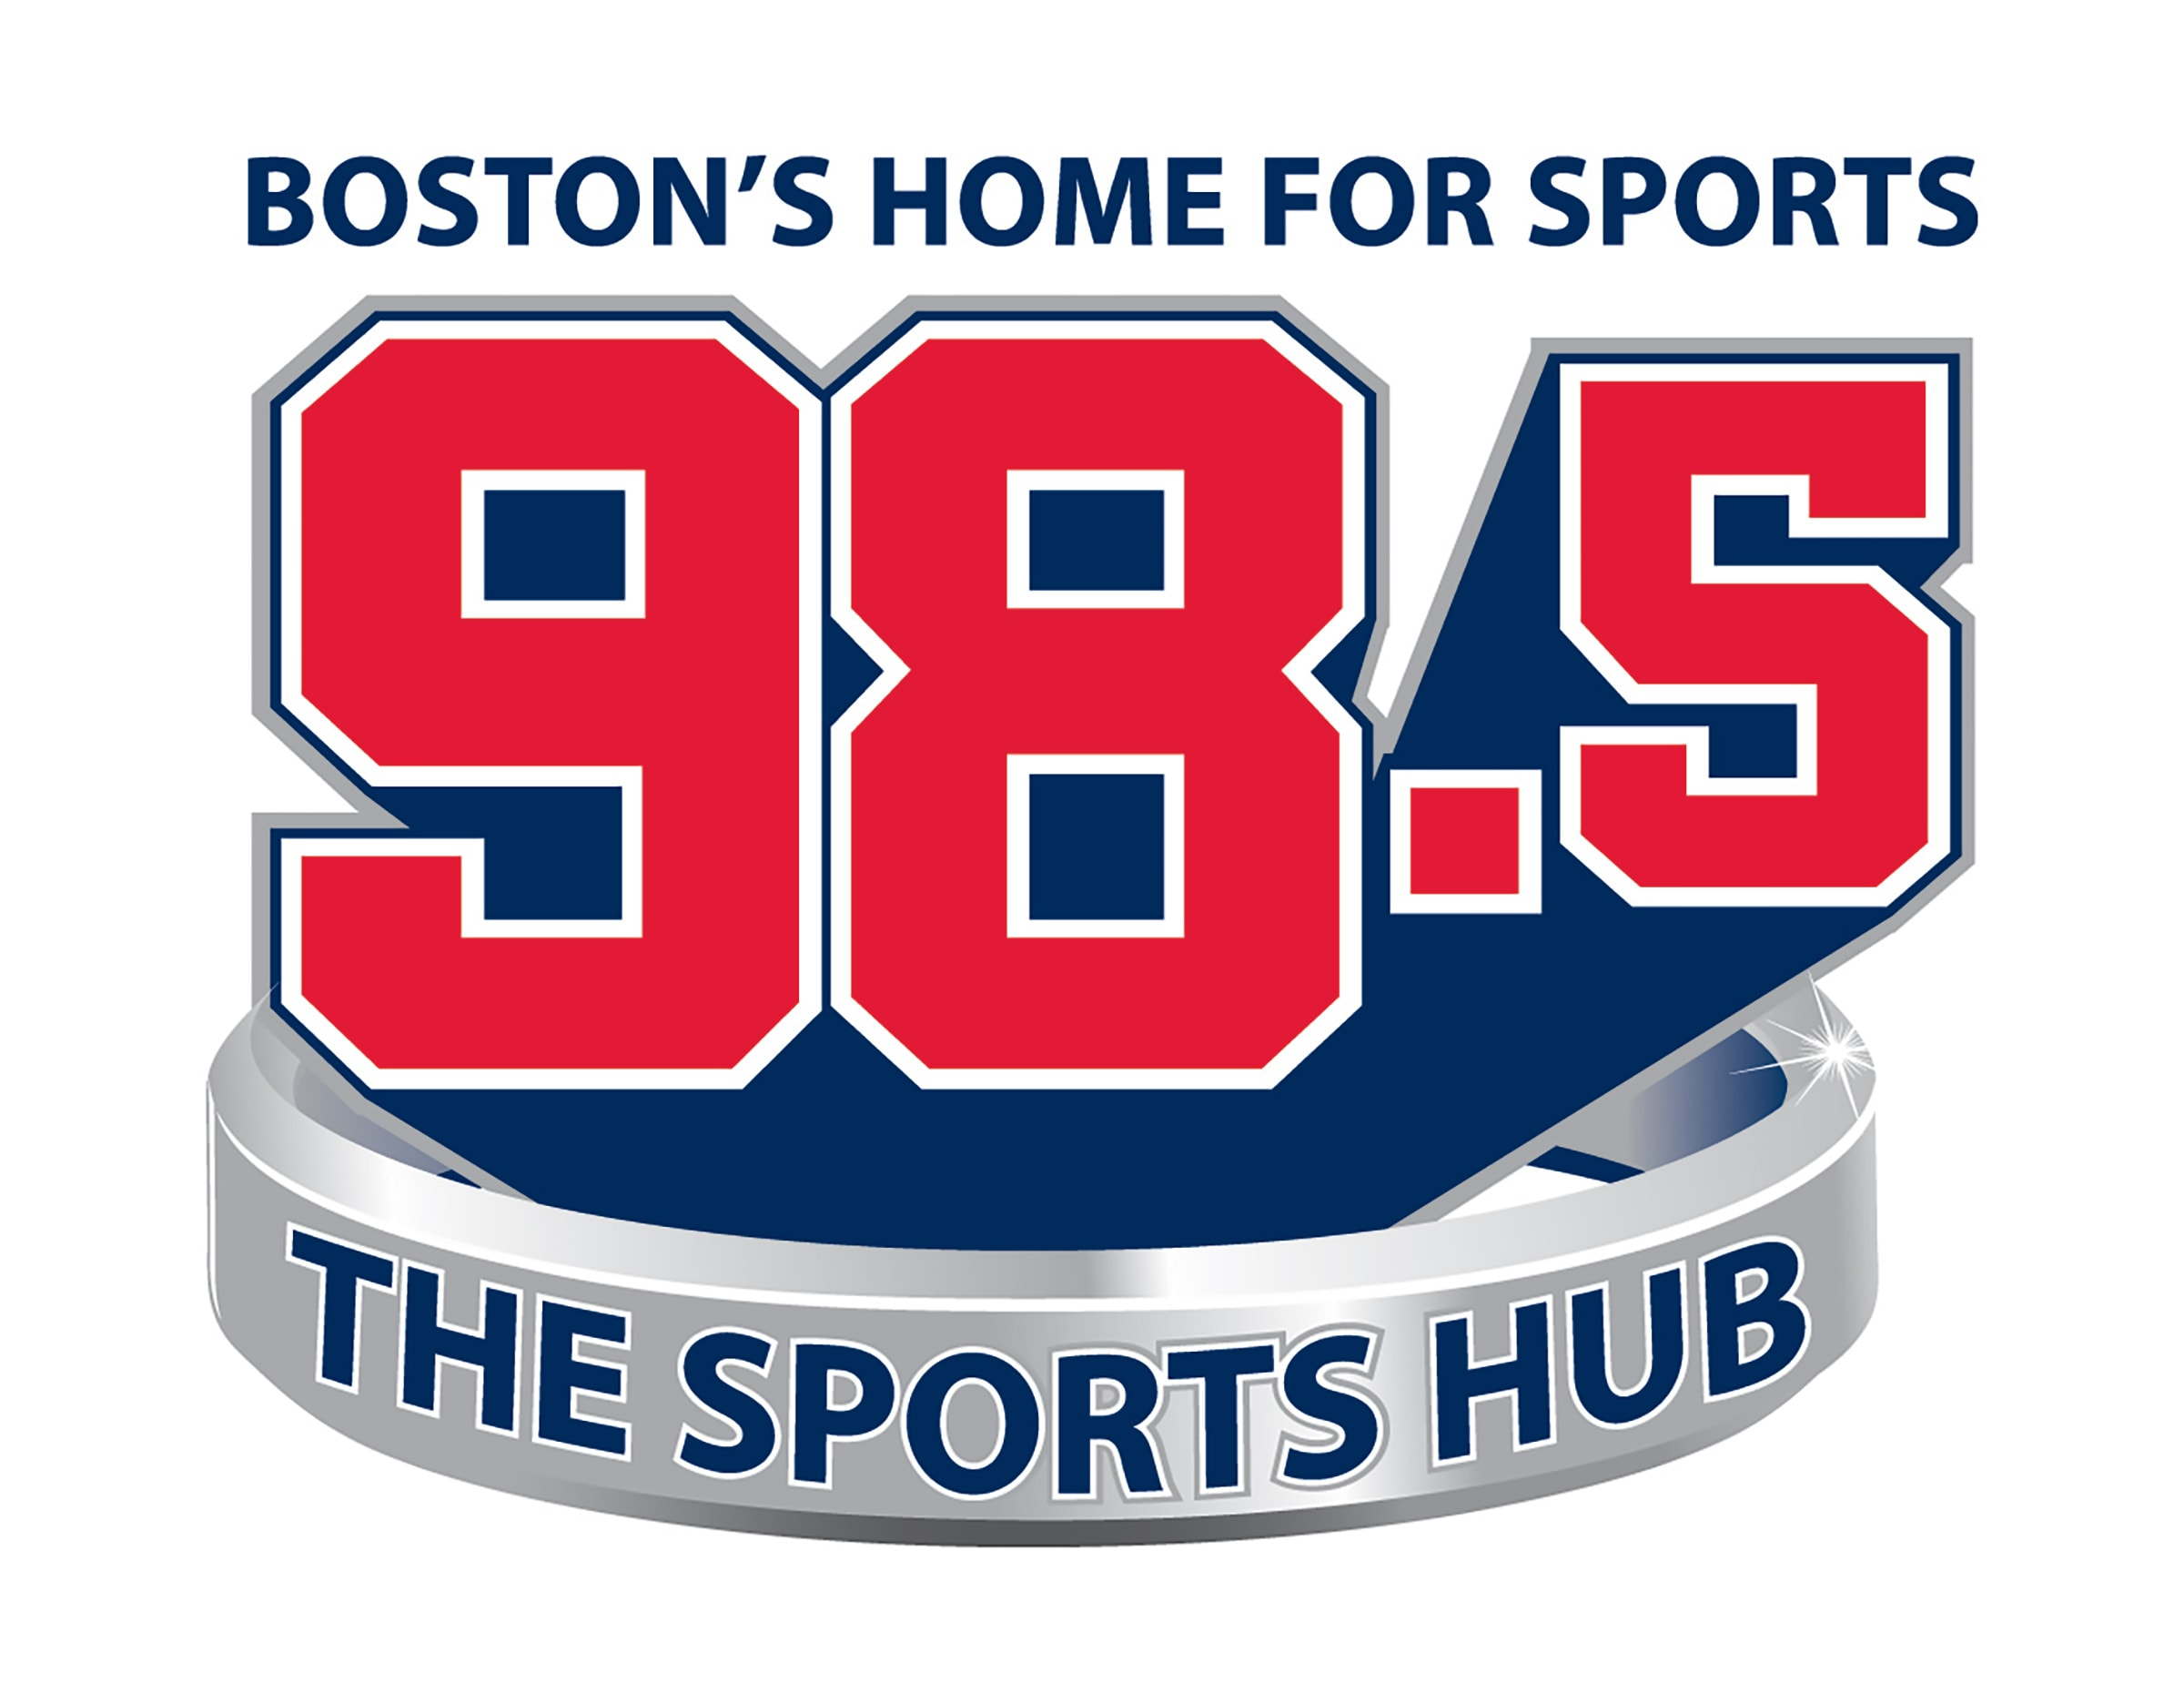 98.5 The Sports Hub - Boston's Home For Sports